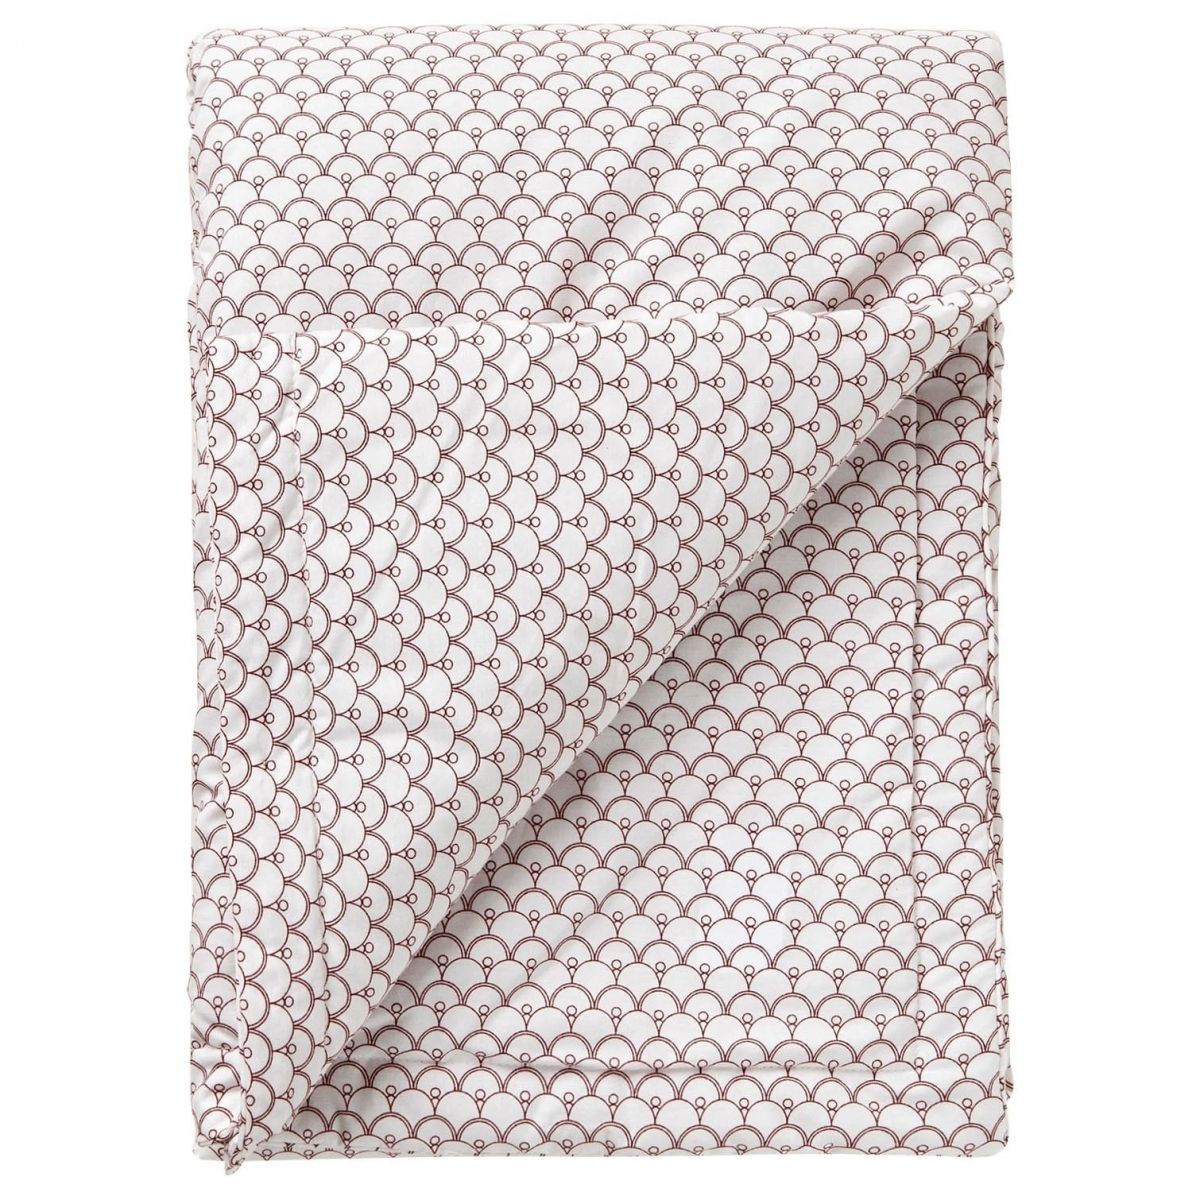 Cupola Rust Filled Blanket white - Garbo & Friends